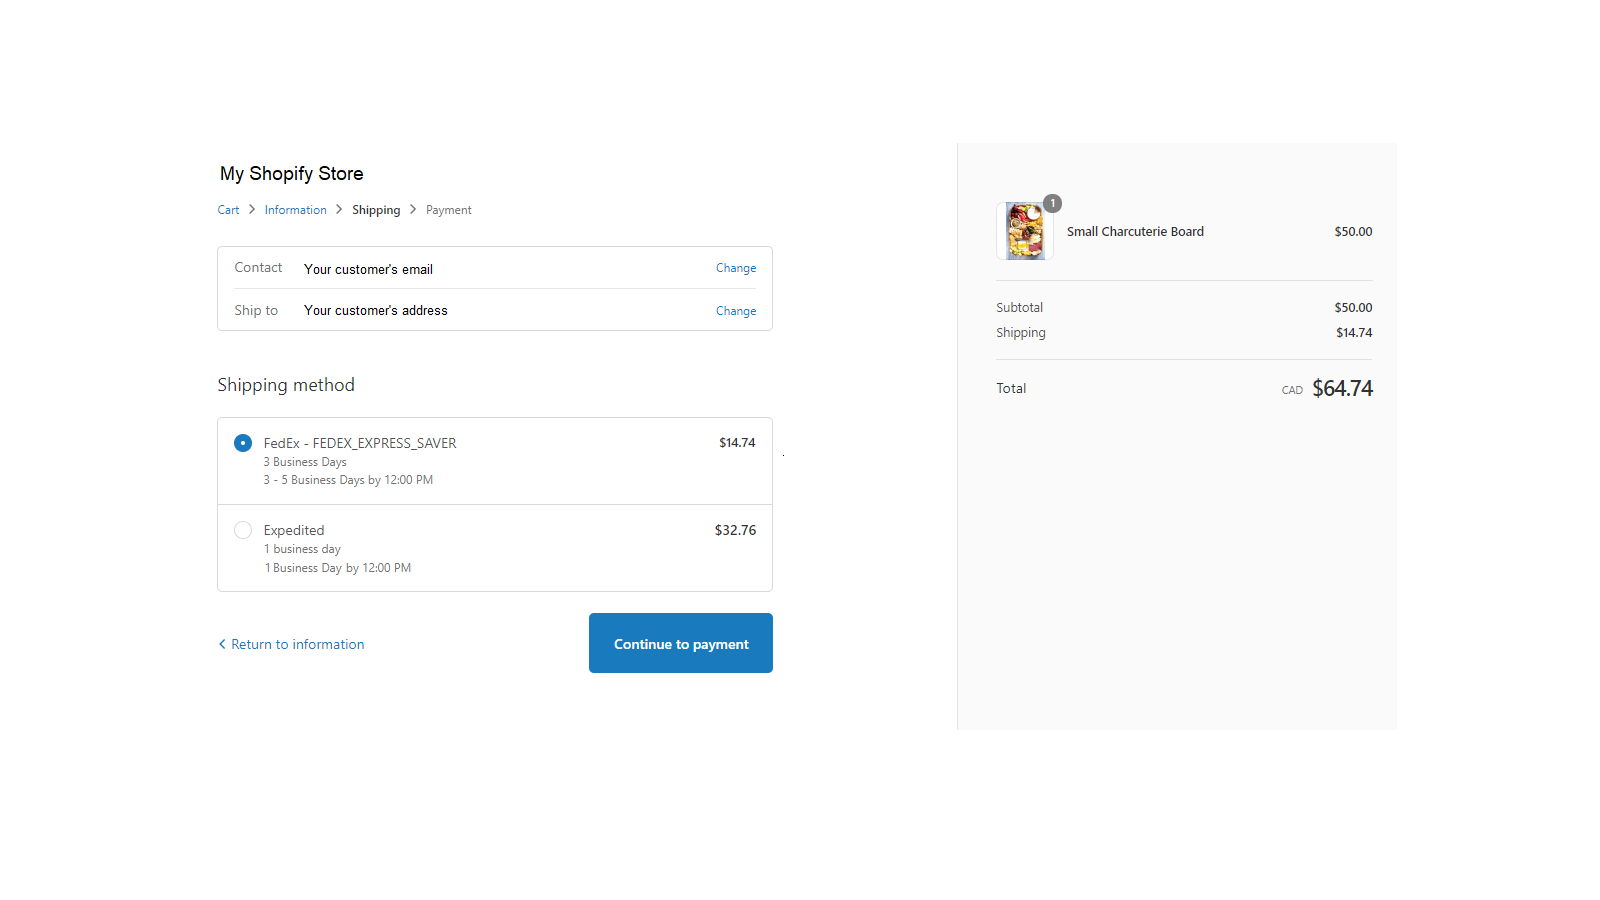 Checkout page showing price and service options